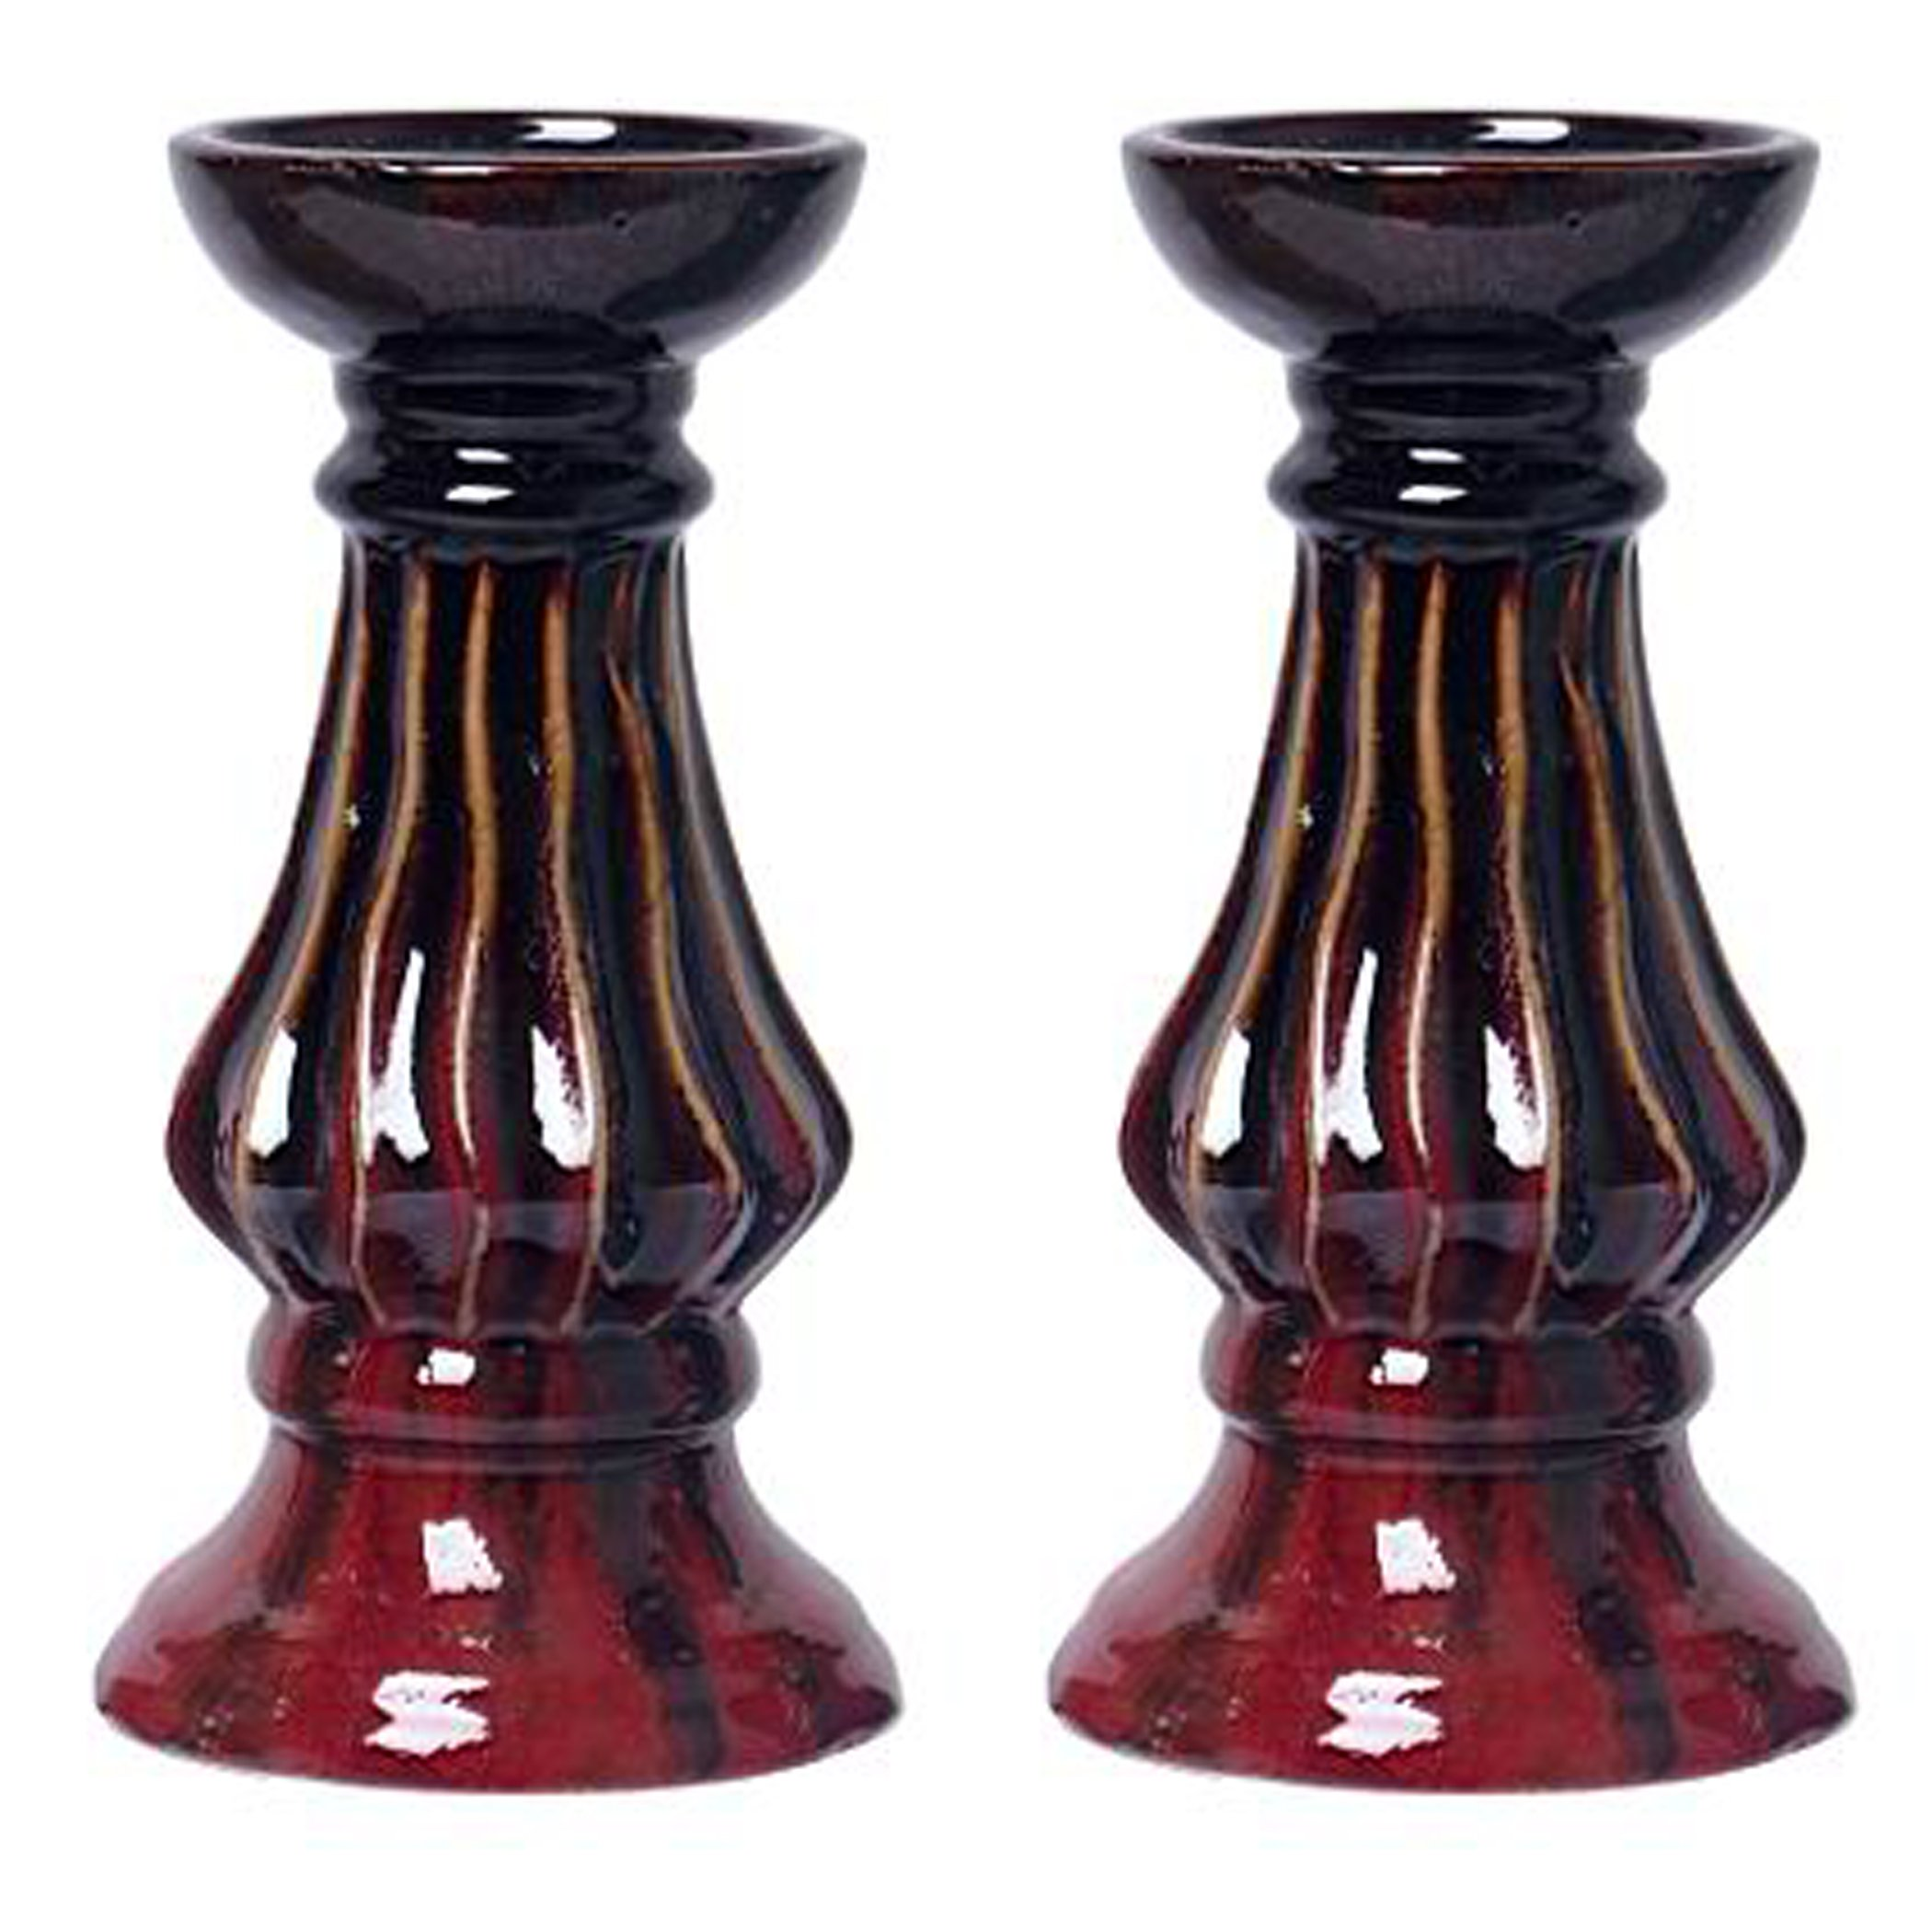 Hosley Set of 2-9'' High Ceramic Pillar Candle Holder, Red Glaze Finish. Ideal Gift for Weddings, House Warming, Home Office, Spa, Votive/Pillar Candle Garden O7